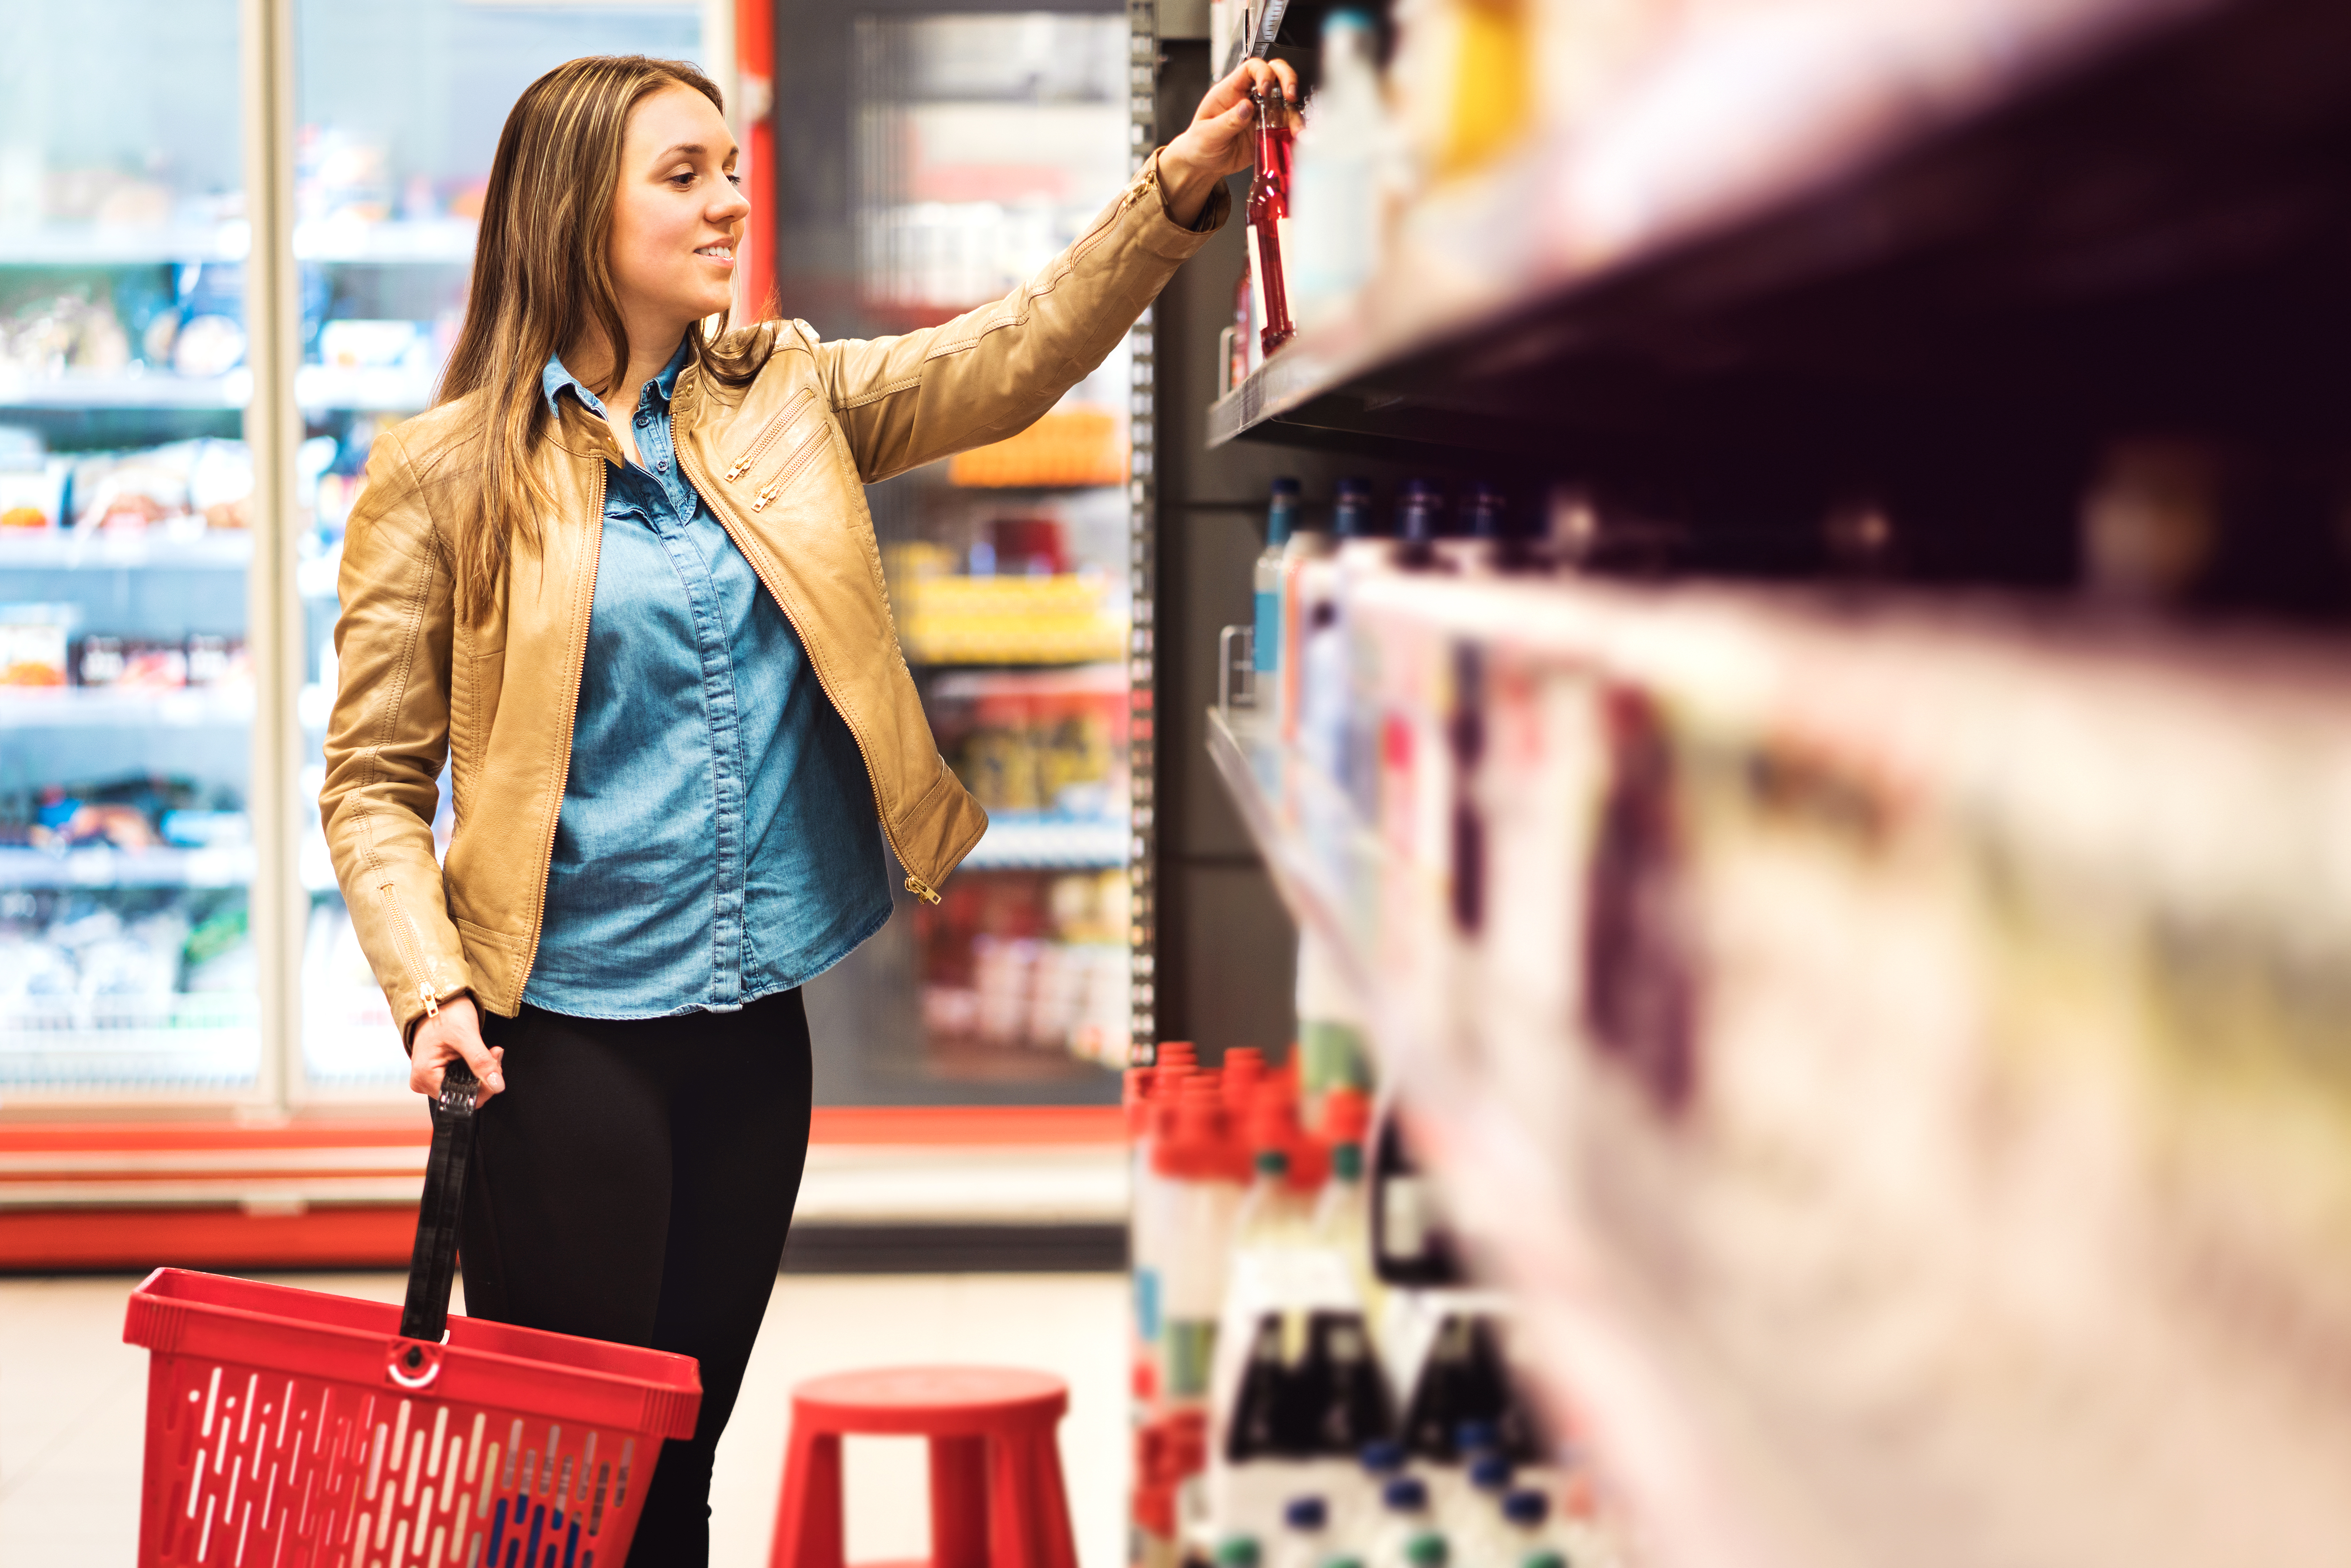 Customer in alcohol or drinks section in supermarket or liquor store holding a bottle from the shelf. Happy lady with shopping basket choosing alcoholic beverages.